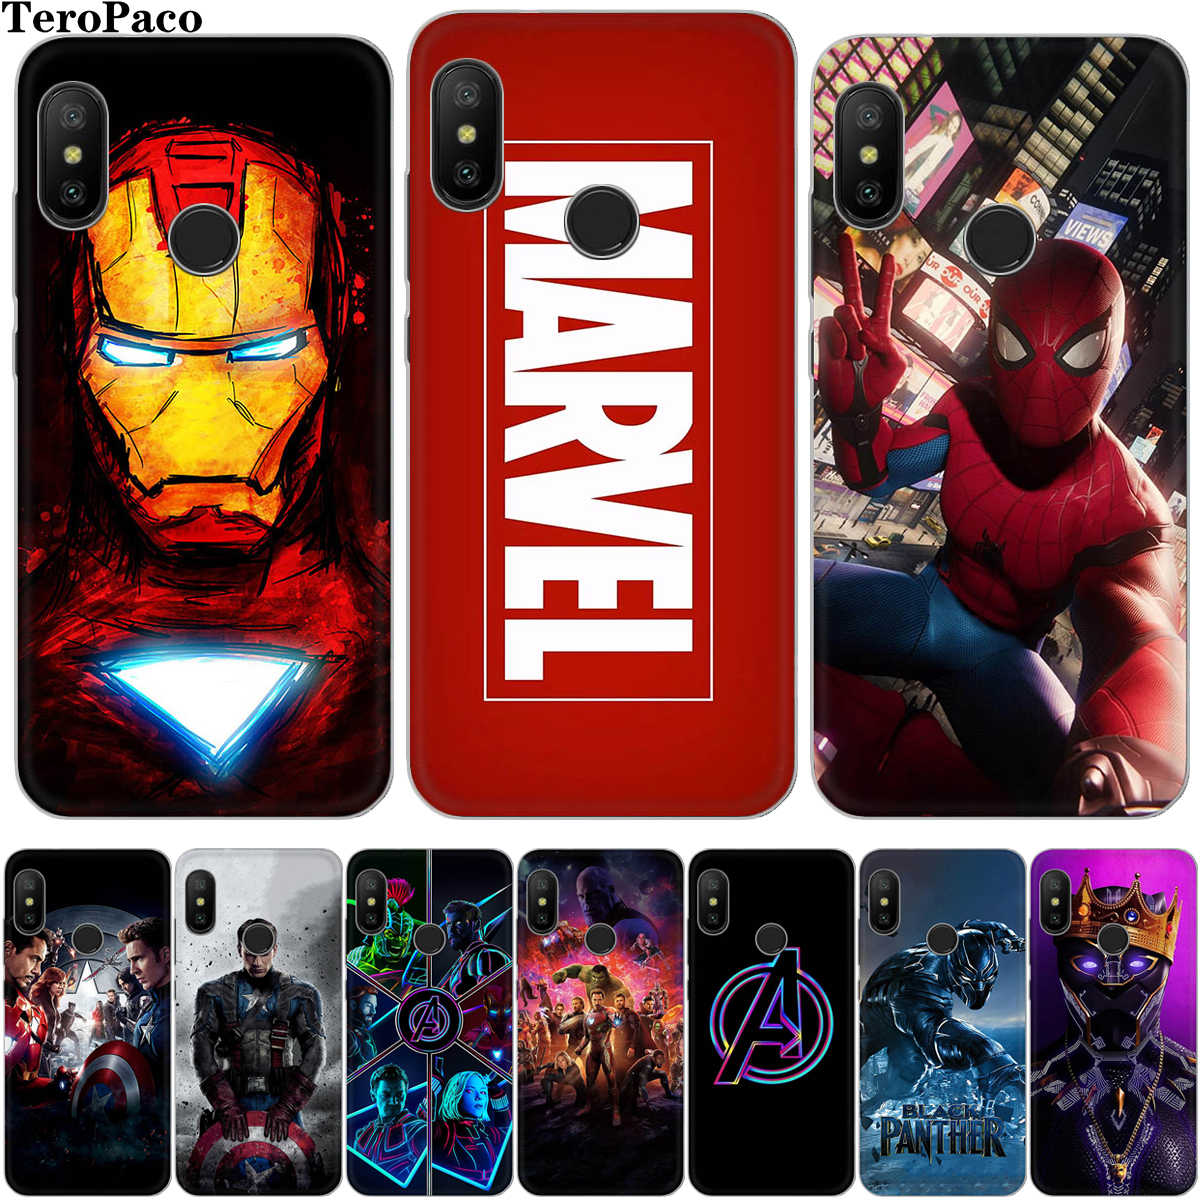 Marvel Avengers Spiderman Iron Kasus Silicone Lembut untuk untuk Xiaomi Redmi 4 4X 4A 5 5A 6 6A 7 7A note6 Note8 Pro Note7 Cover Funda